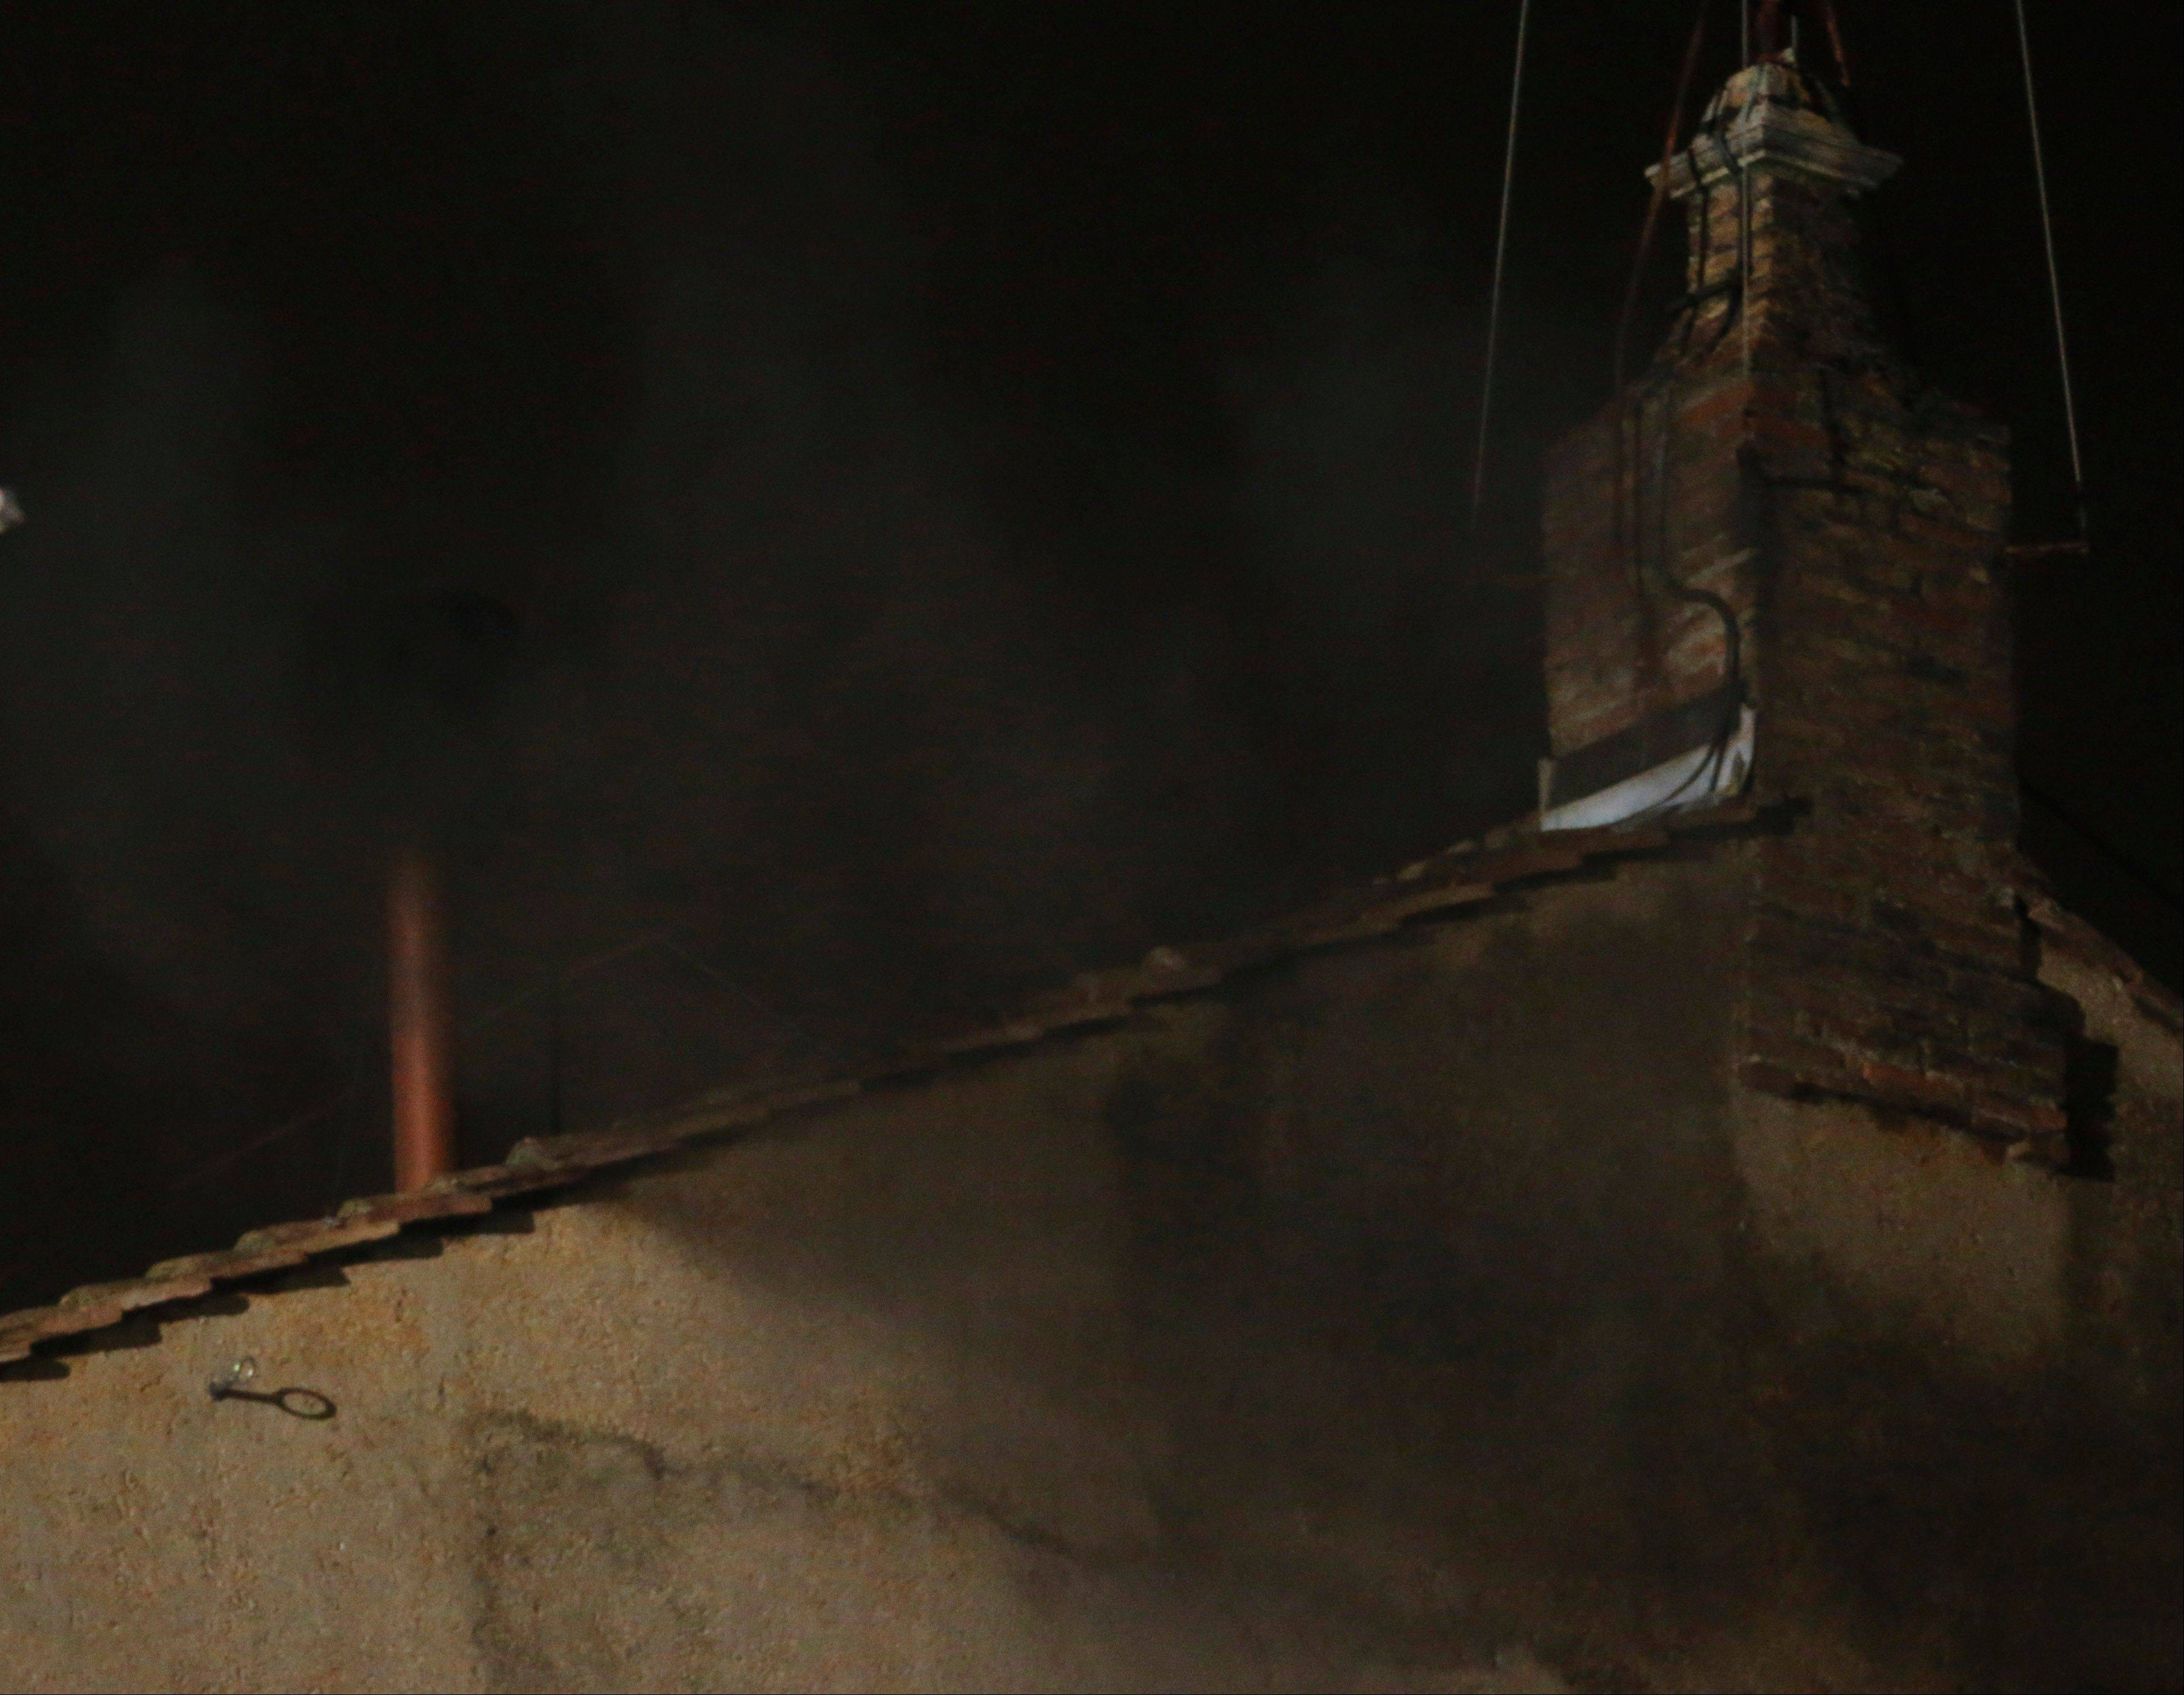 Black smoke emerges from the chimney on the roof of the Sistine Chapel, in St. Peter's Square at the Vatican, Tuesday, March 12, 2013. The black smoke indicates that the new pope has not been elected yet.